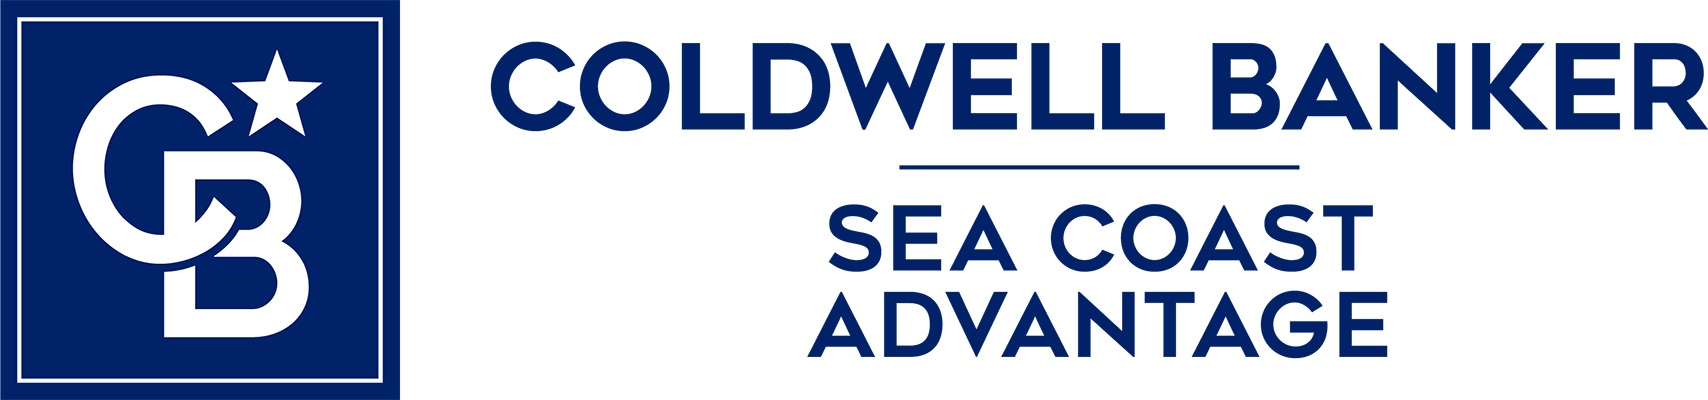 James Diaz - Coldwell Banker Sea Coast Advantage Realty